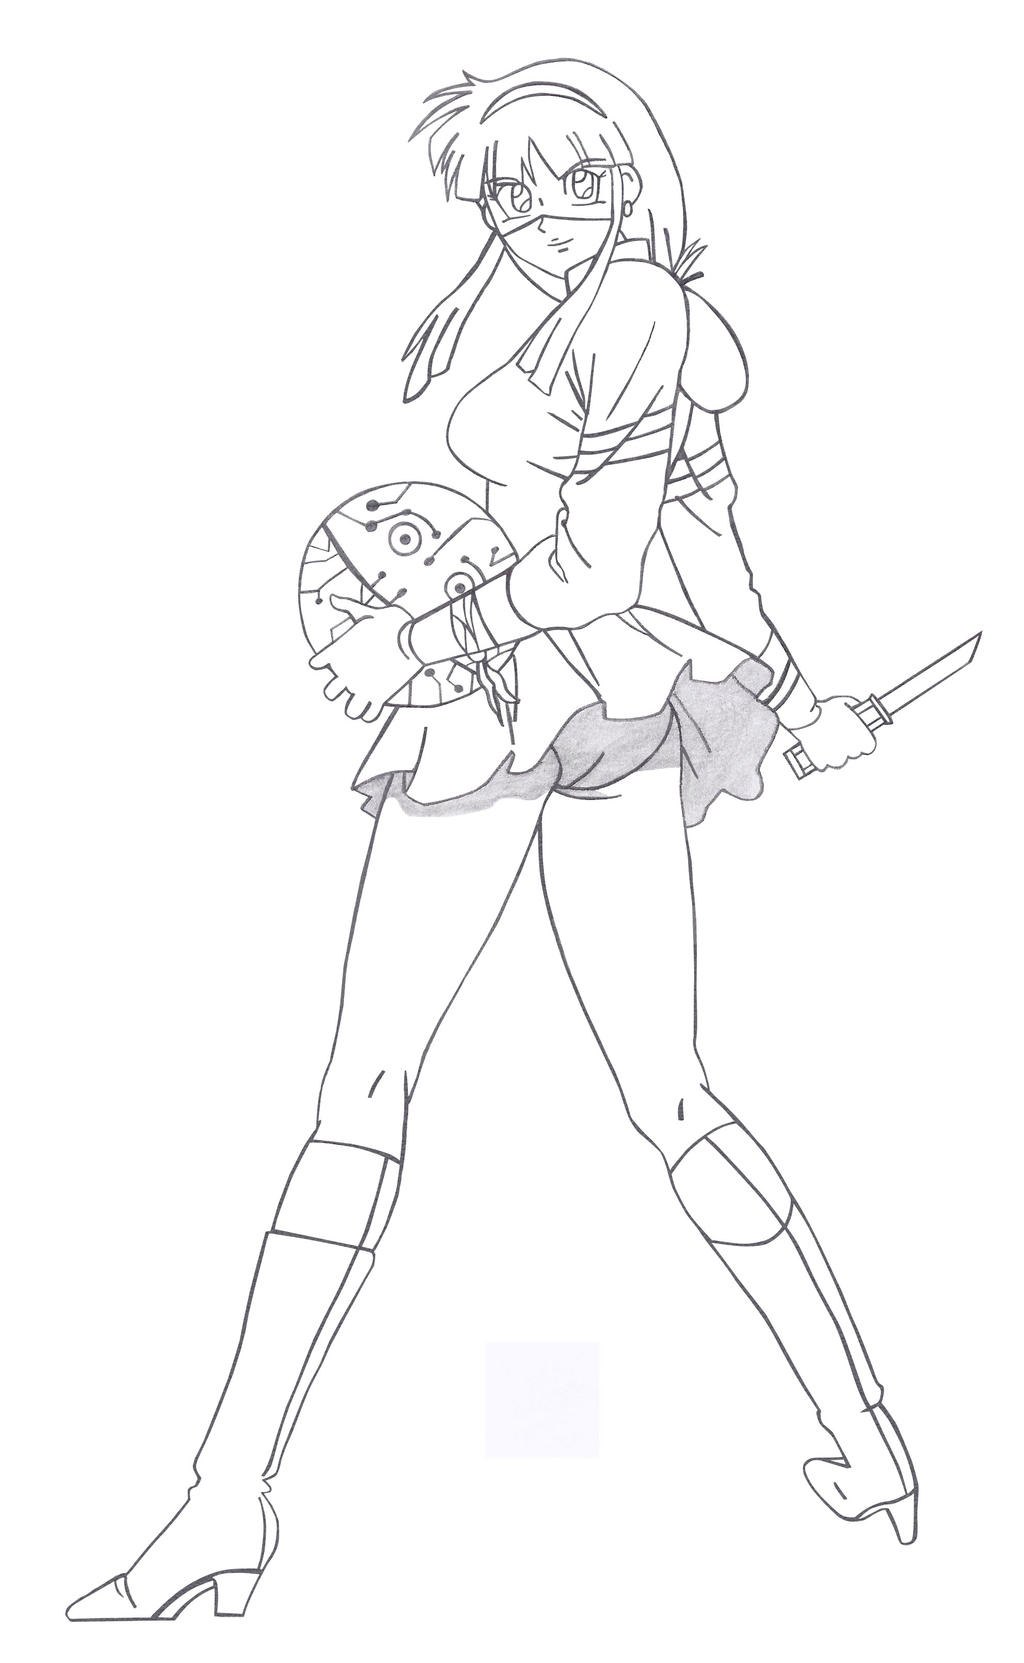 pin anime poses generator images to pinterest